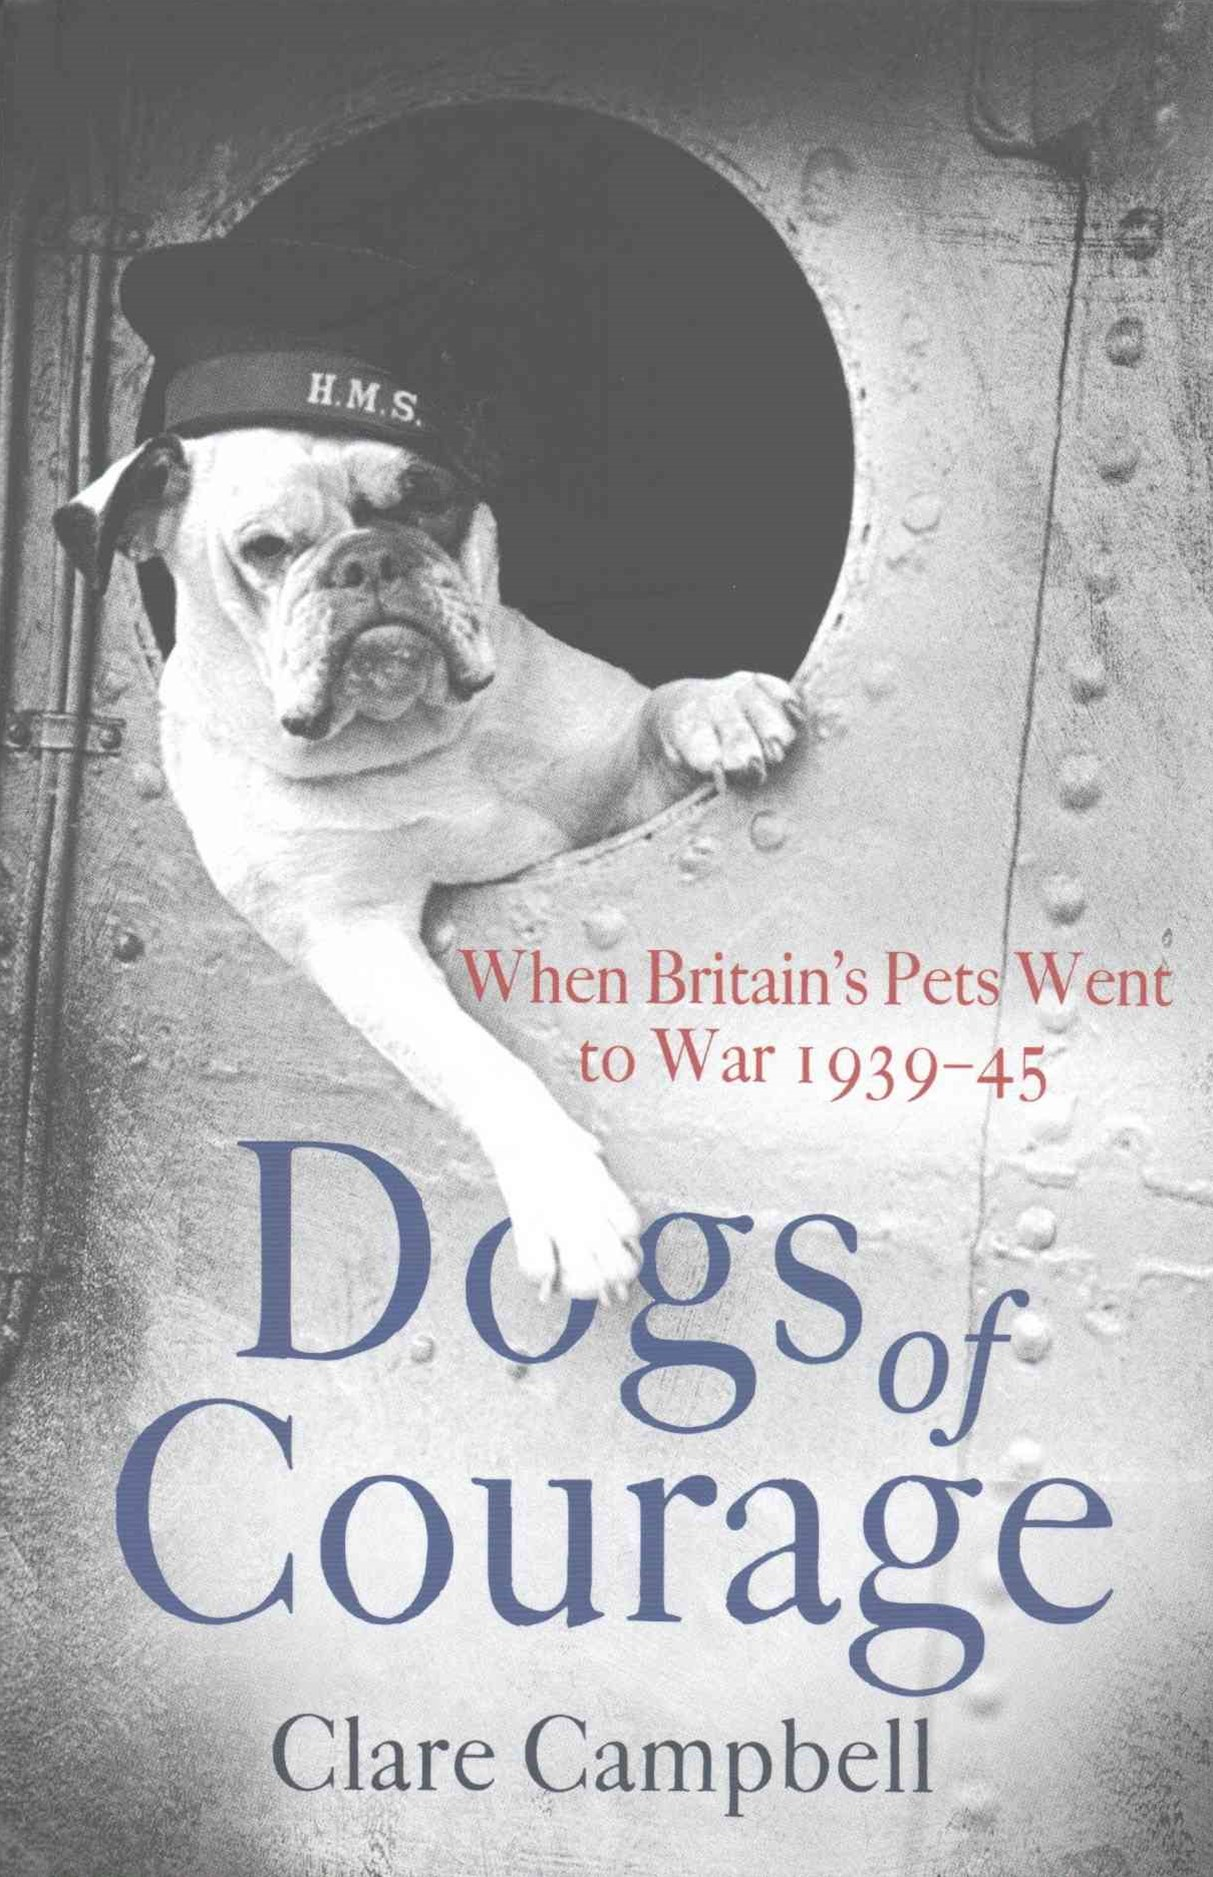 Dogs of Courage